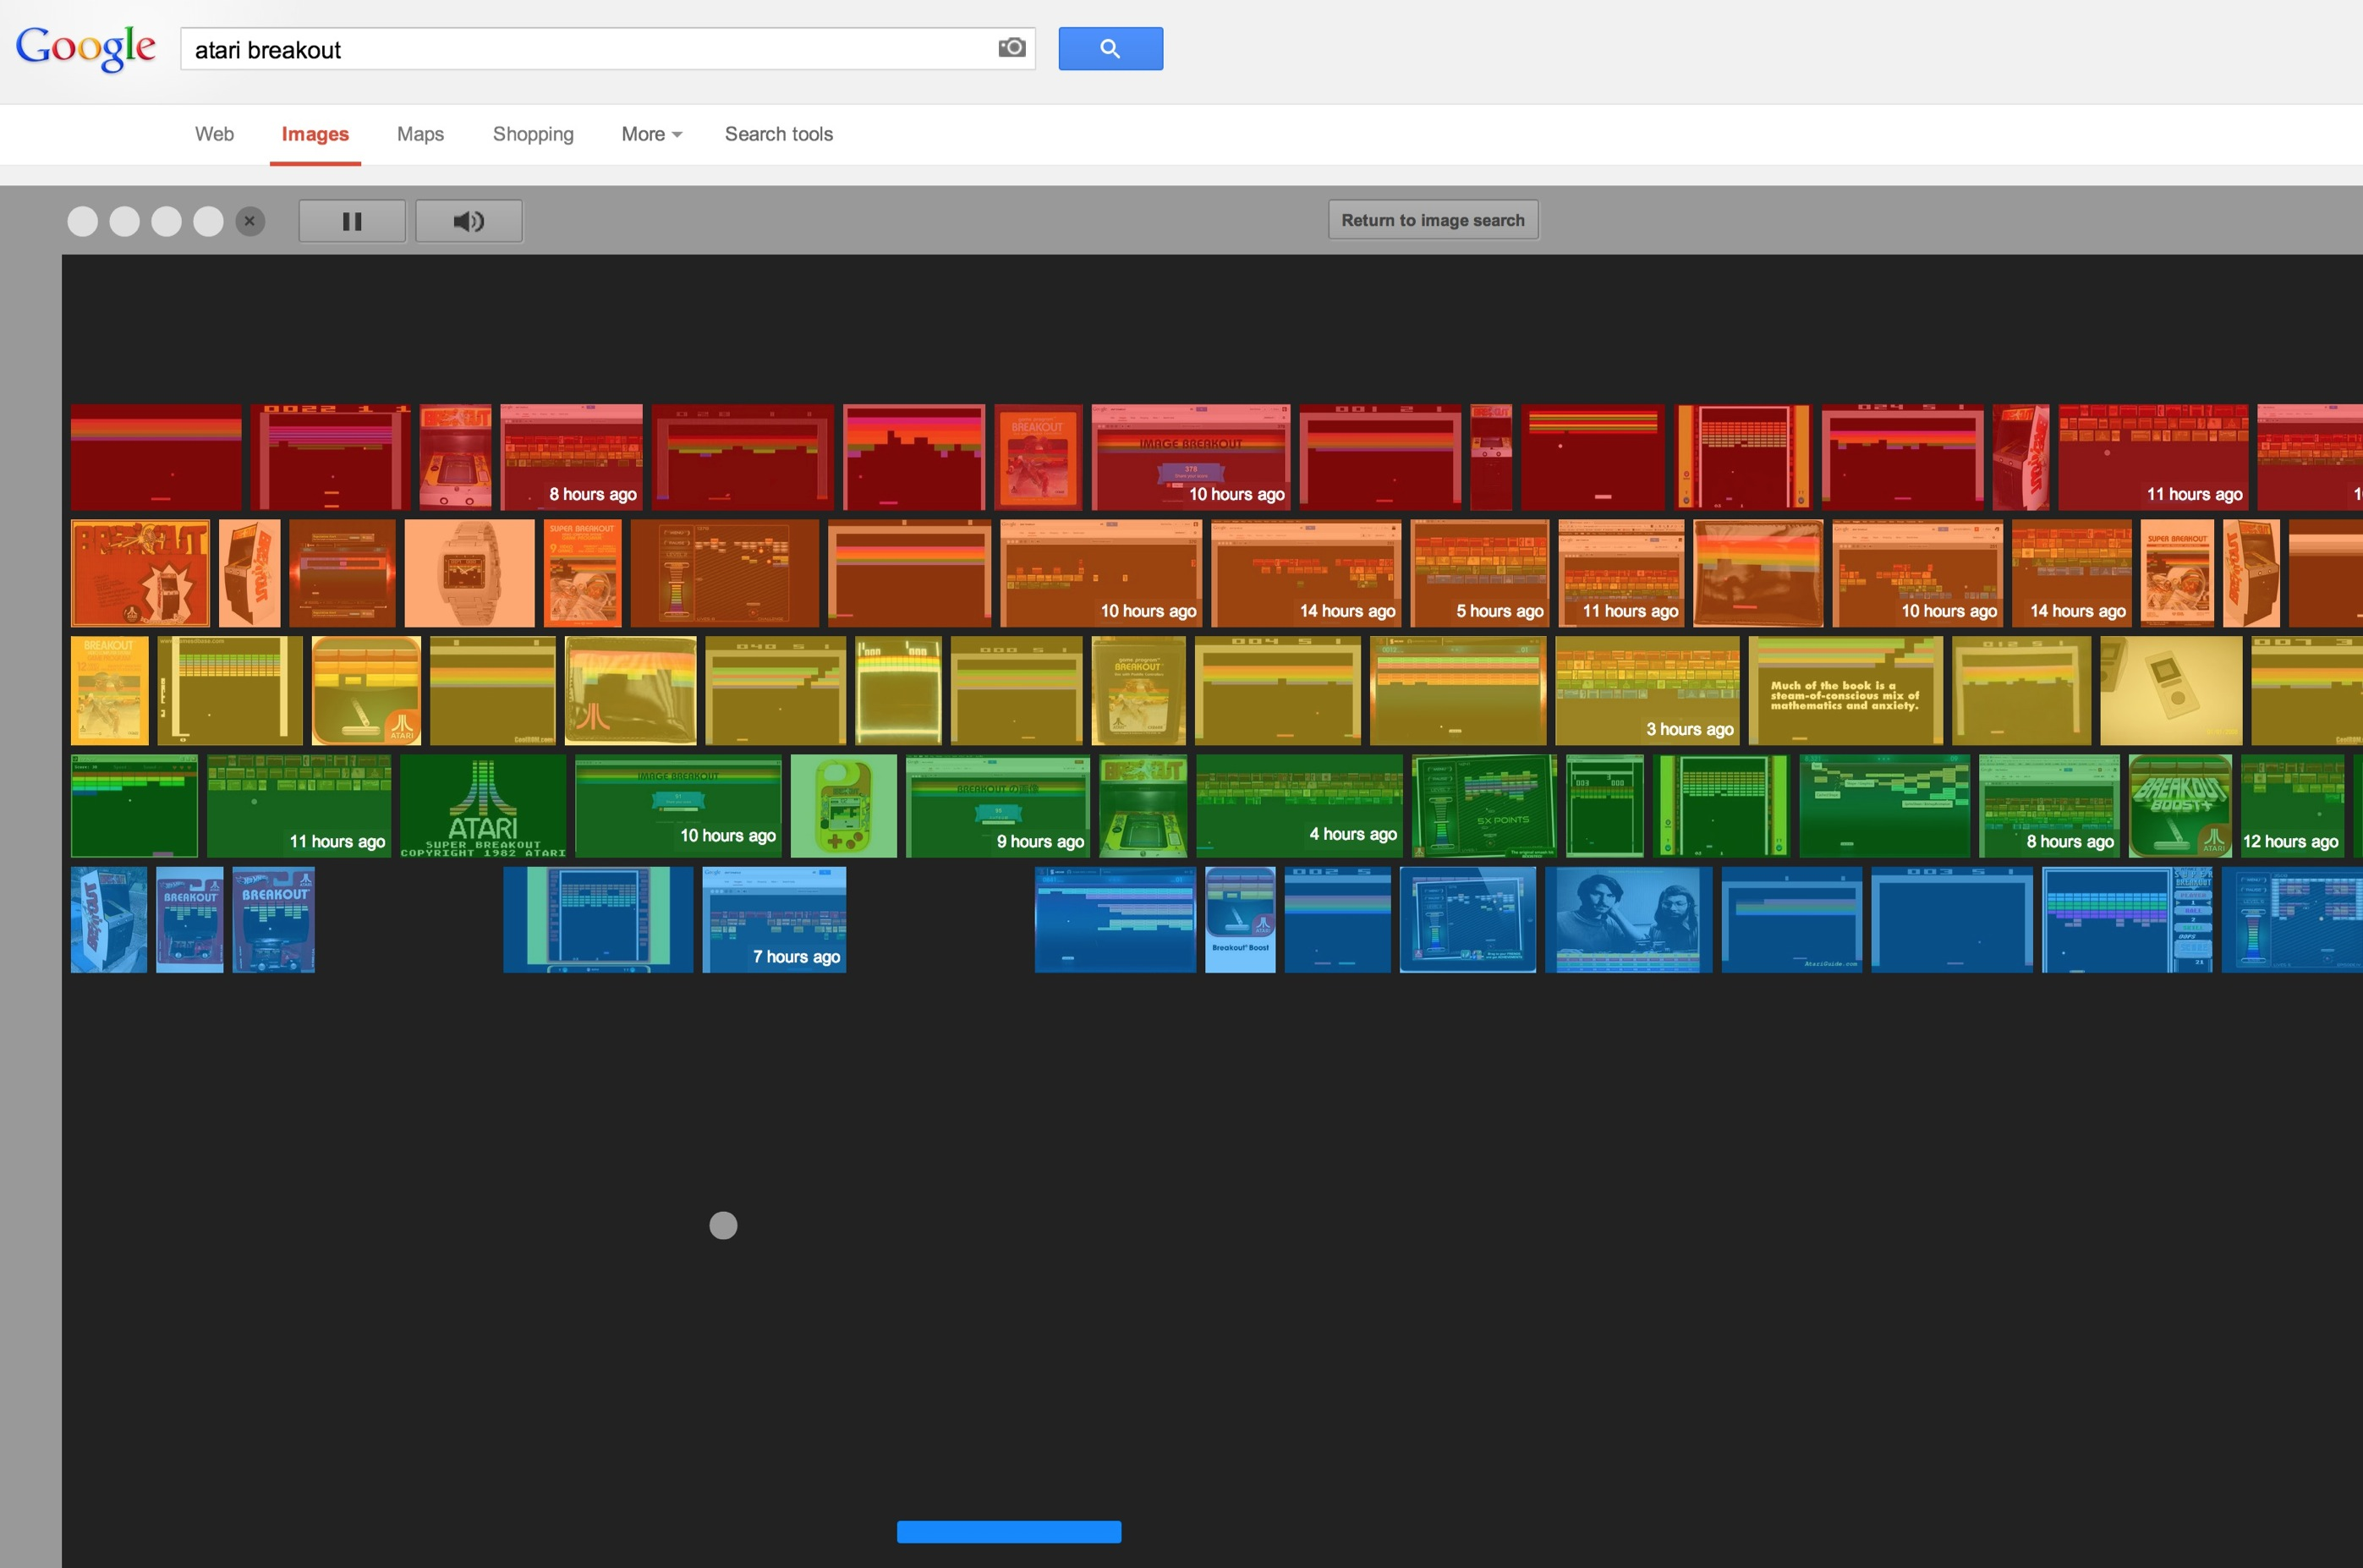 You Can Play Atari Breakout On Google Image Search Right